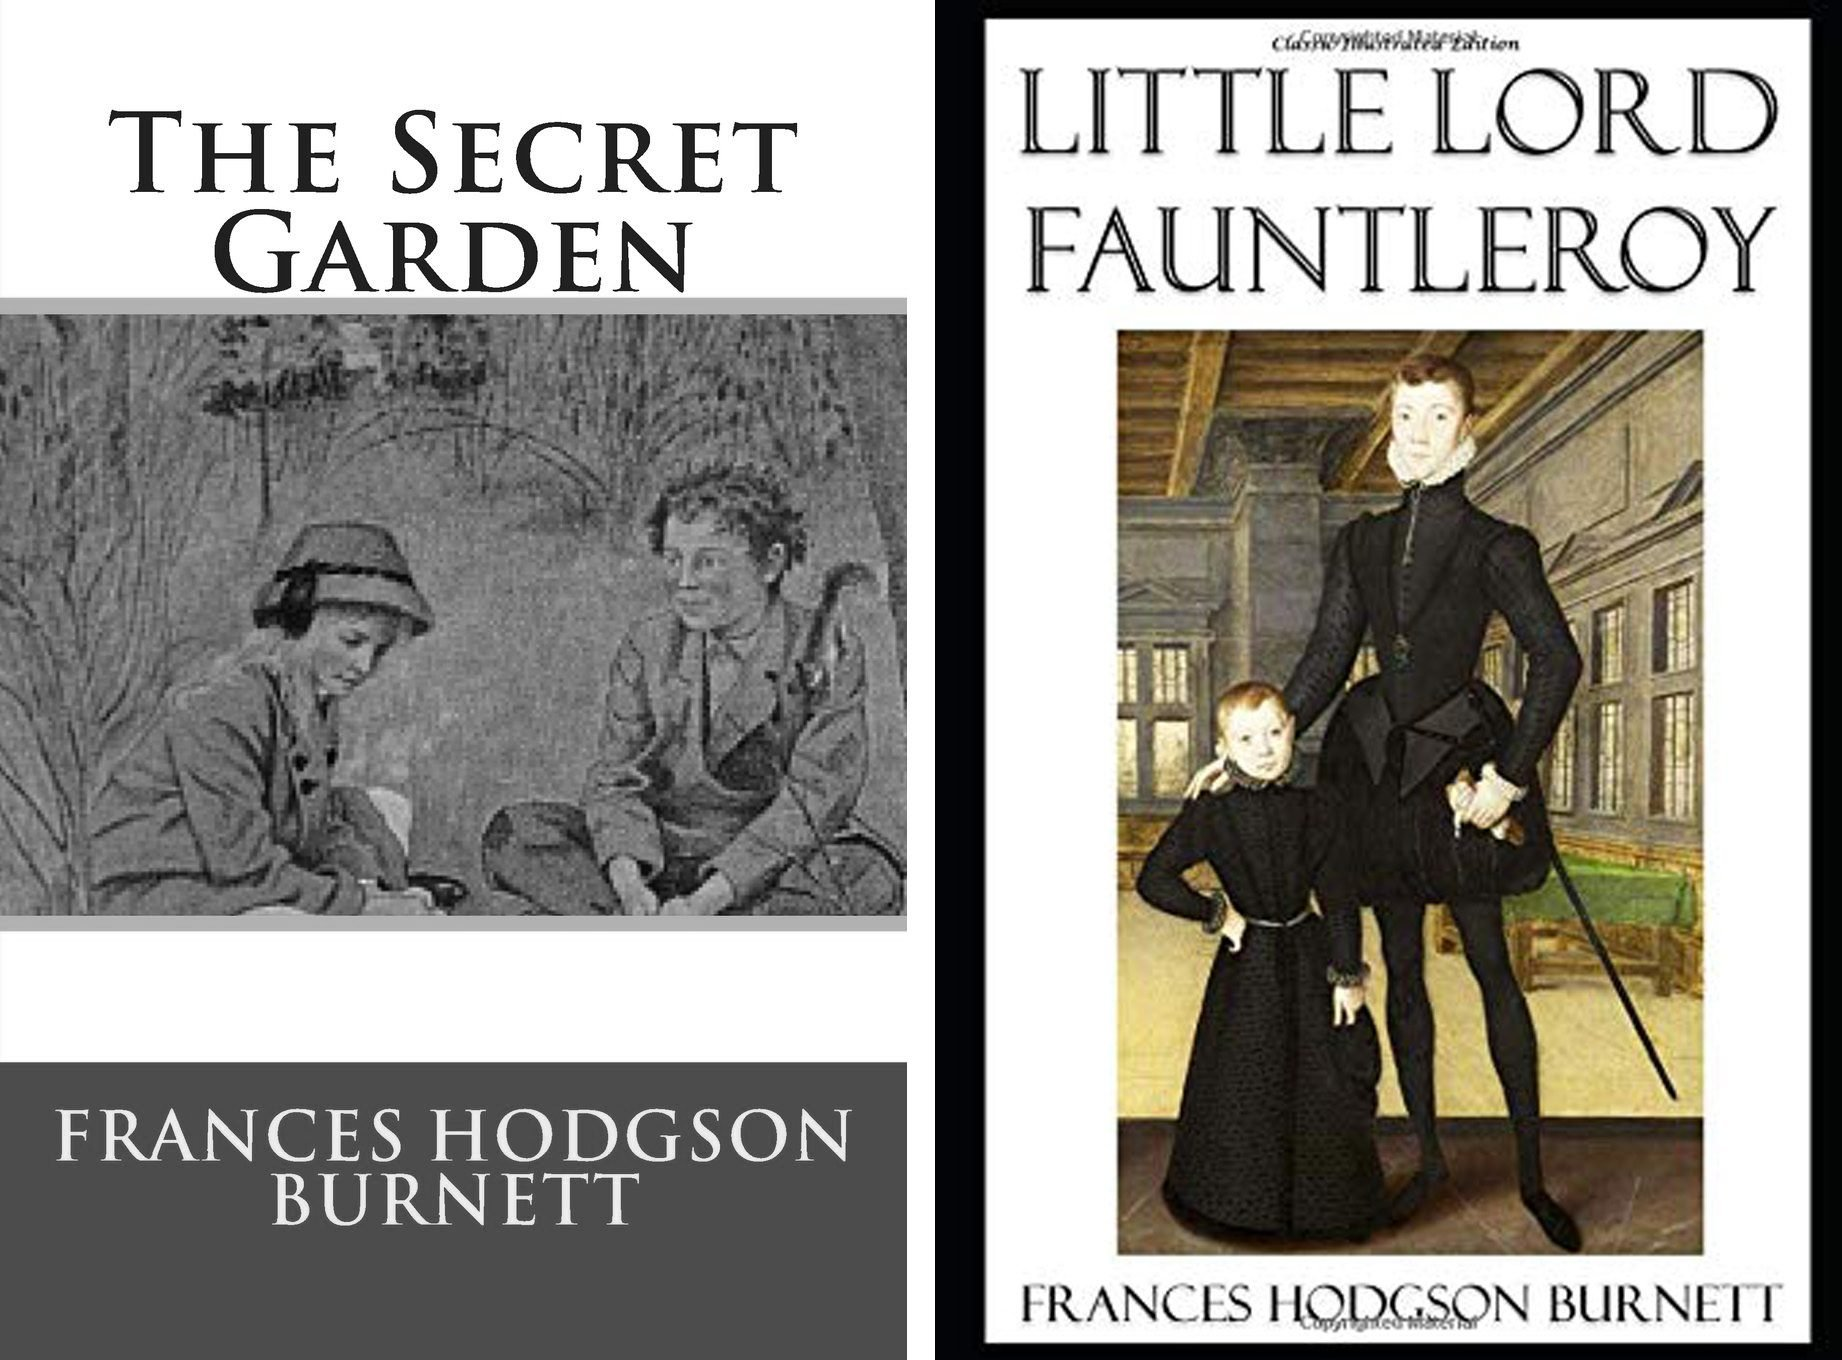 the secret garden and little lord fauntleroy books